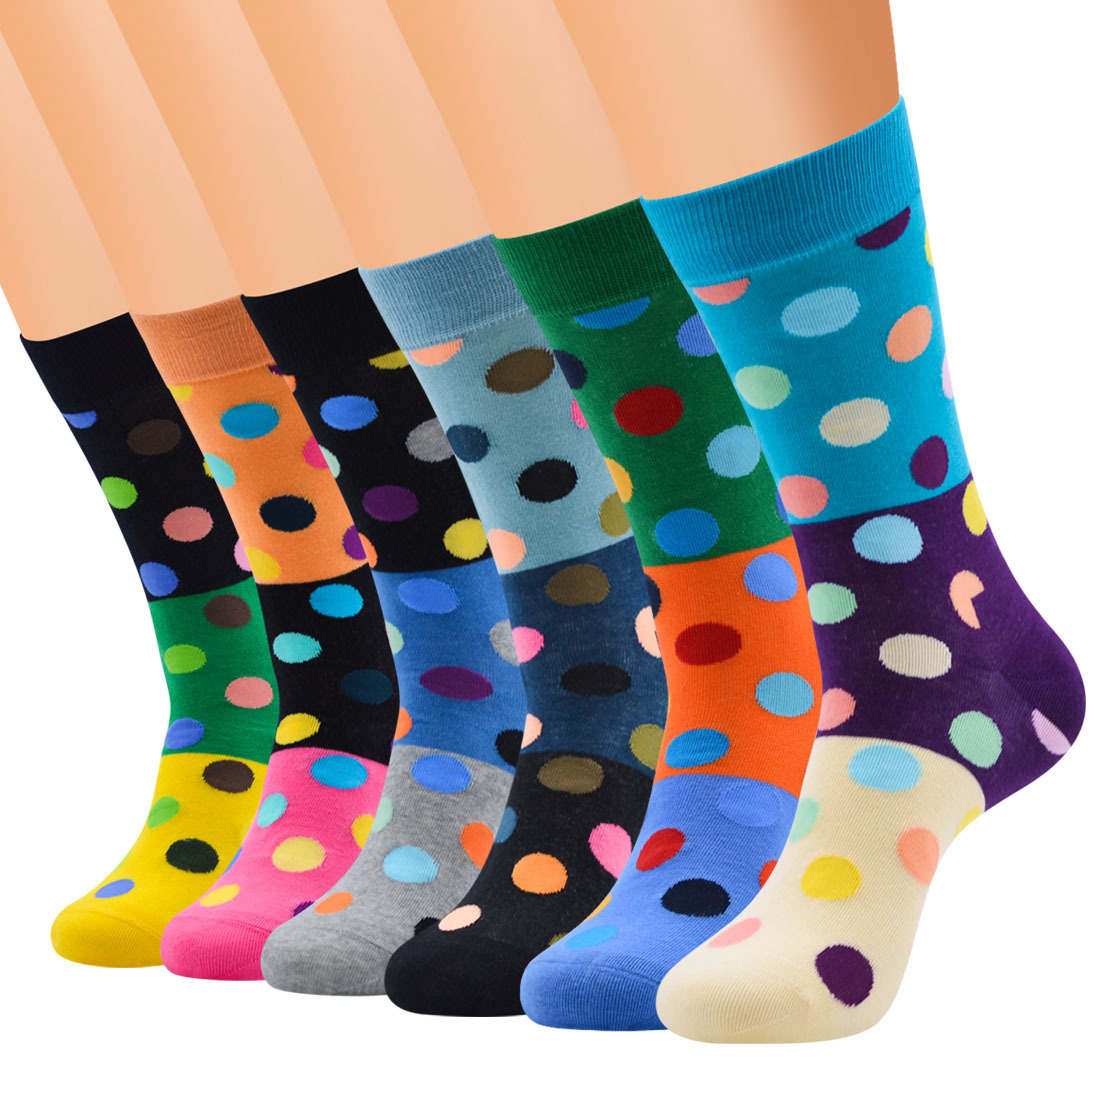 2020 New Arrived Happy Socks Men Funny Lattice Dot Design Colorful Combed Cotton Socks Casual Leisure Socks For Gift